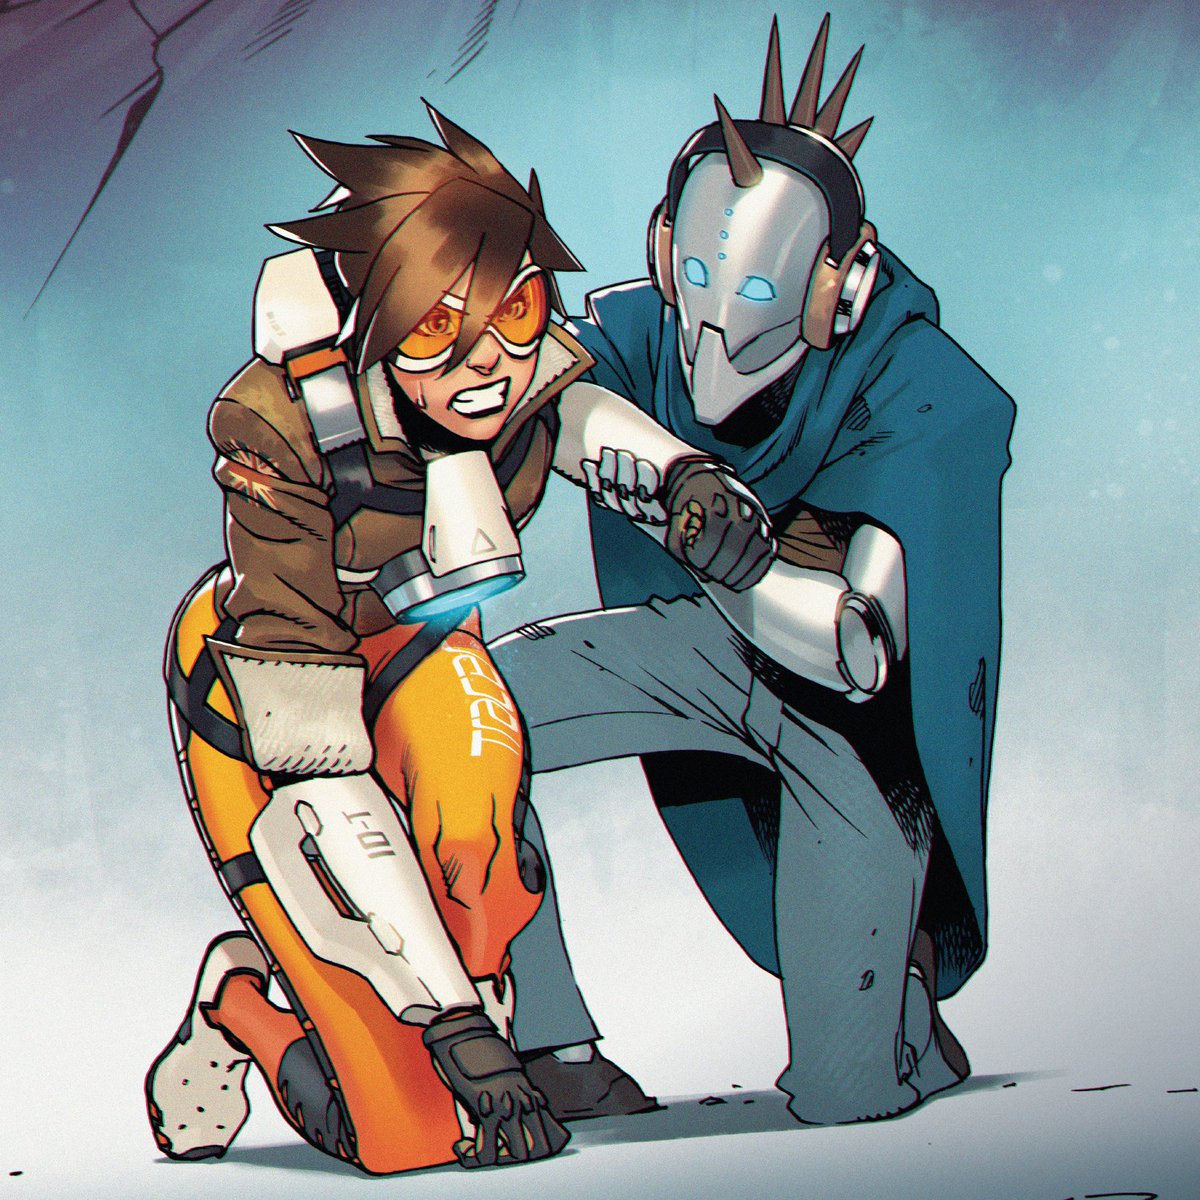 Back in the fight!  TRACER-LONDON CALLING 4 from @DarkHorseComics lands into your hands on Jan 13th, but here's a sneak peek at the cover art.